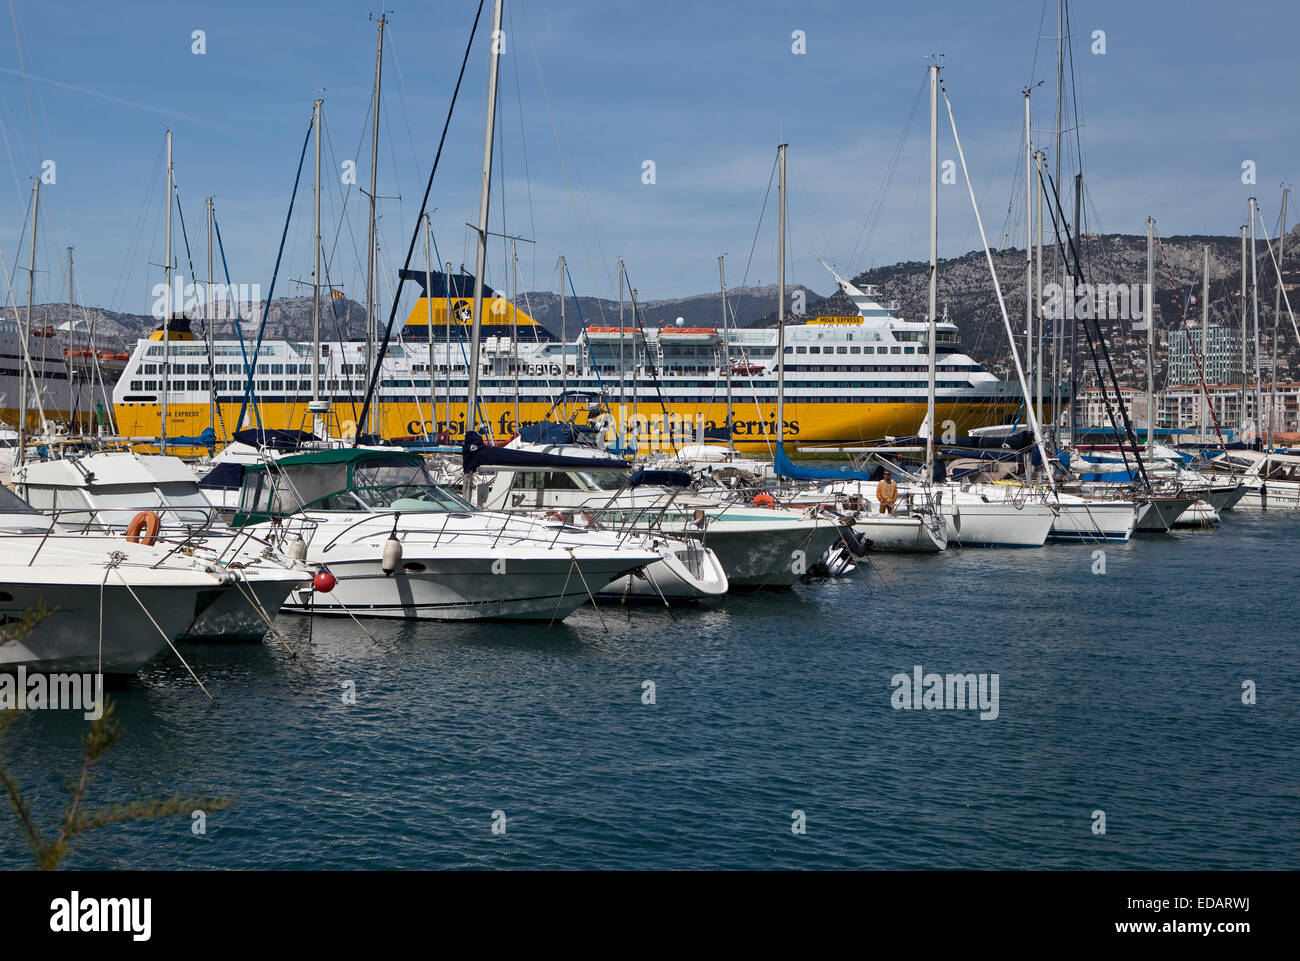 Hotel Port Toulon France Toulon Stock Photos And France Toulon Stock Images